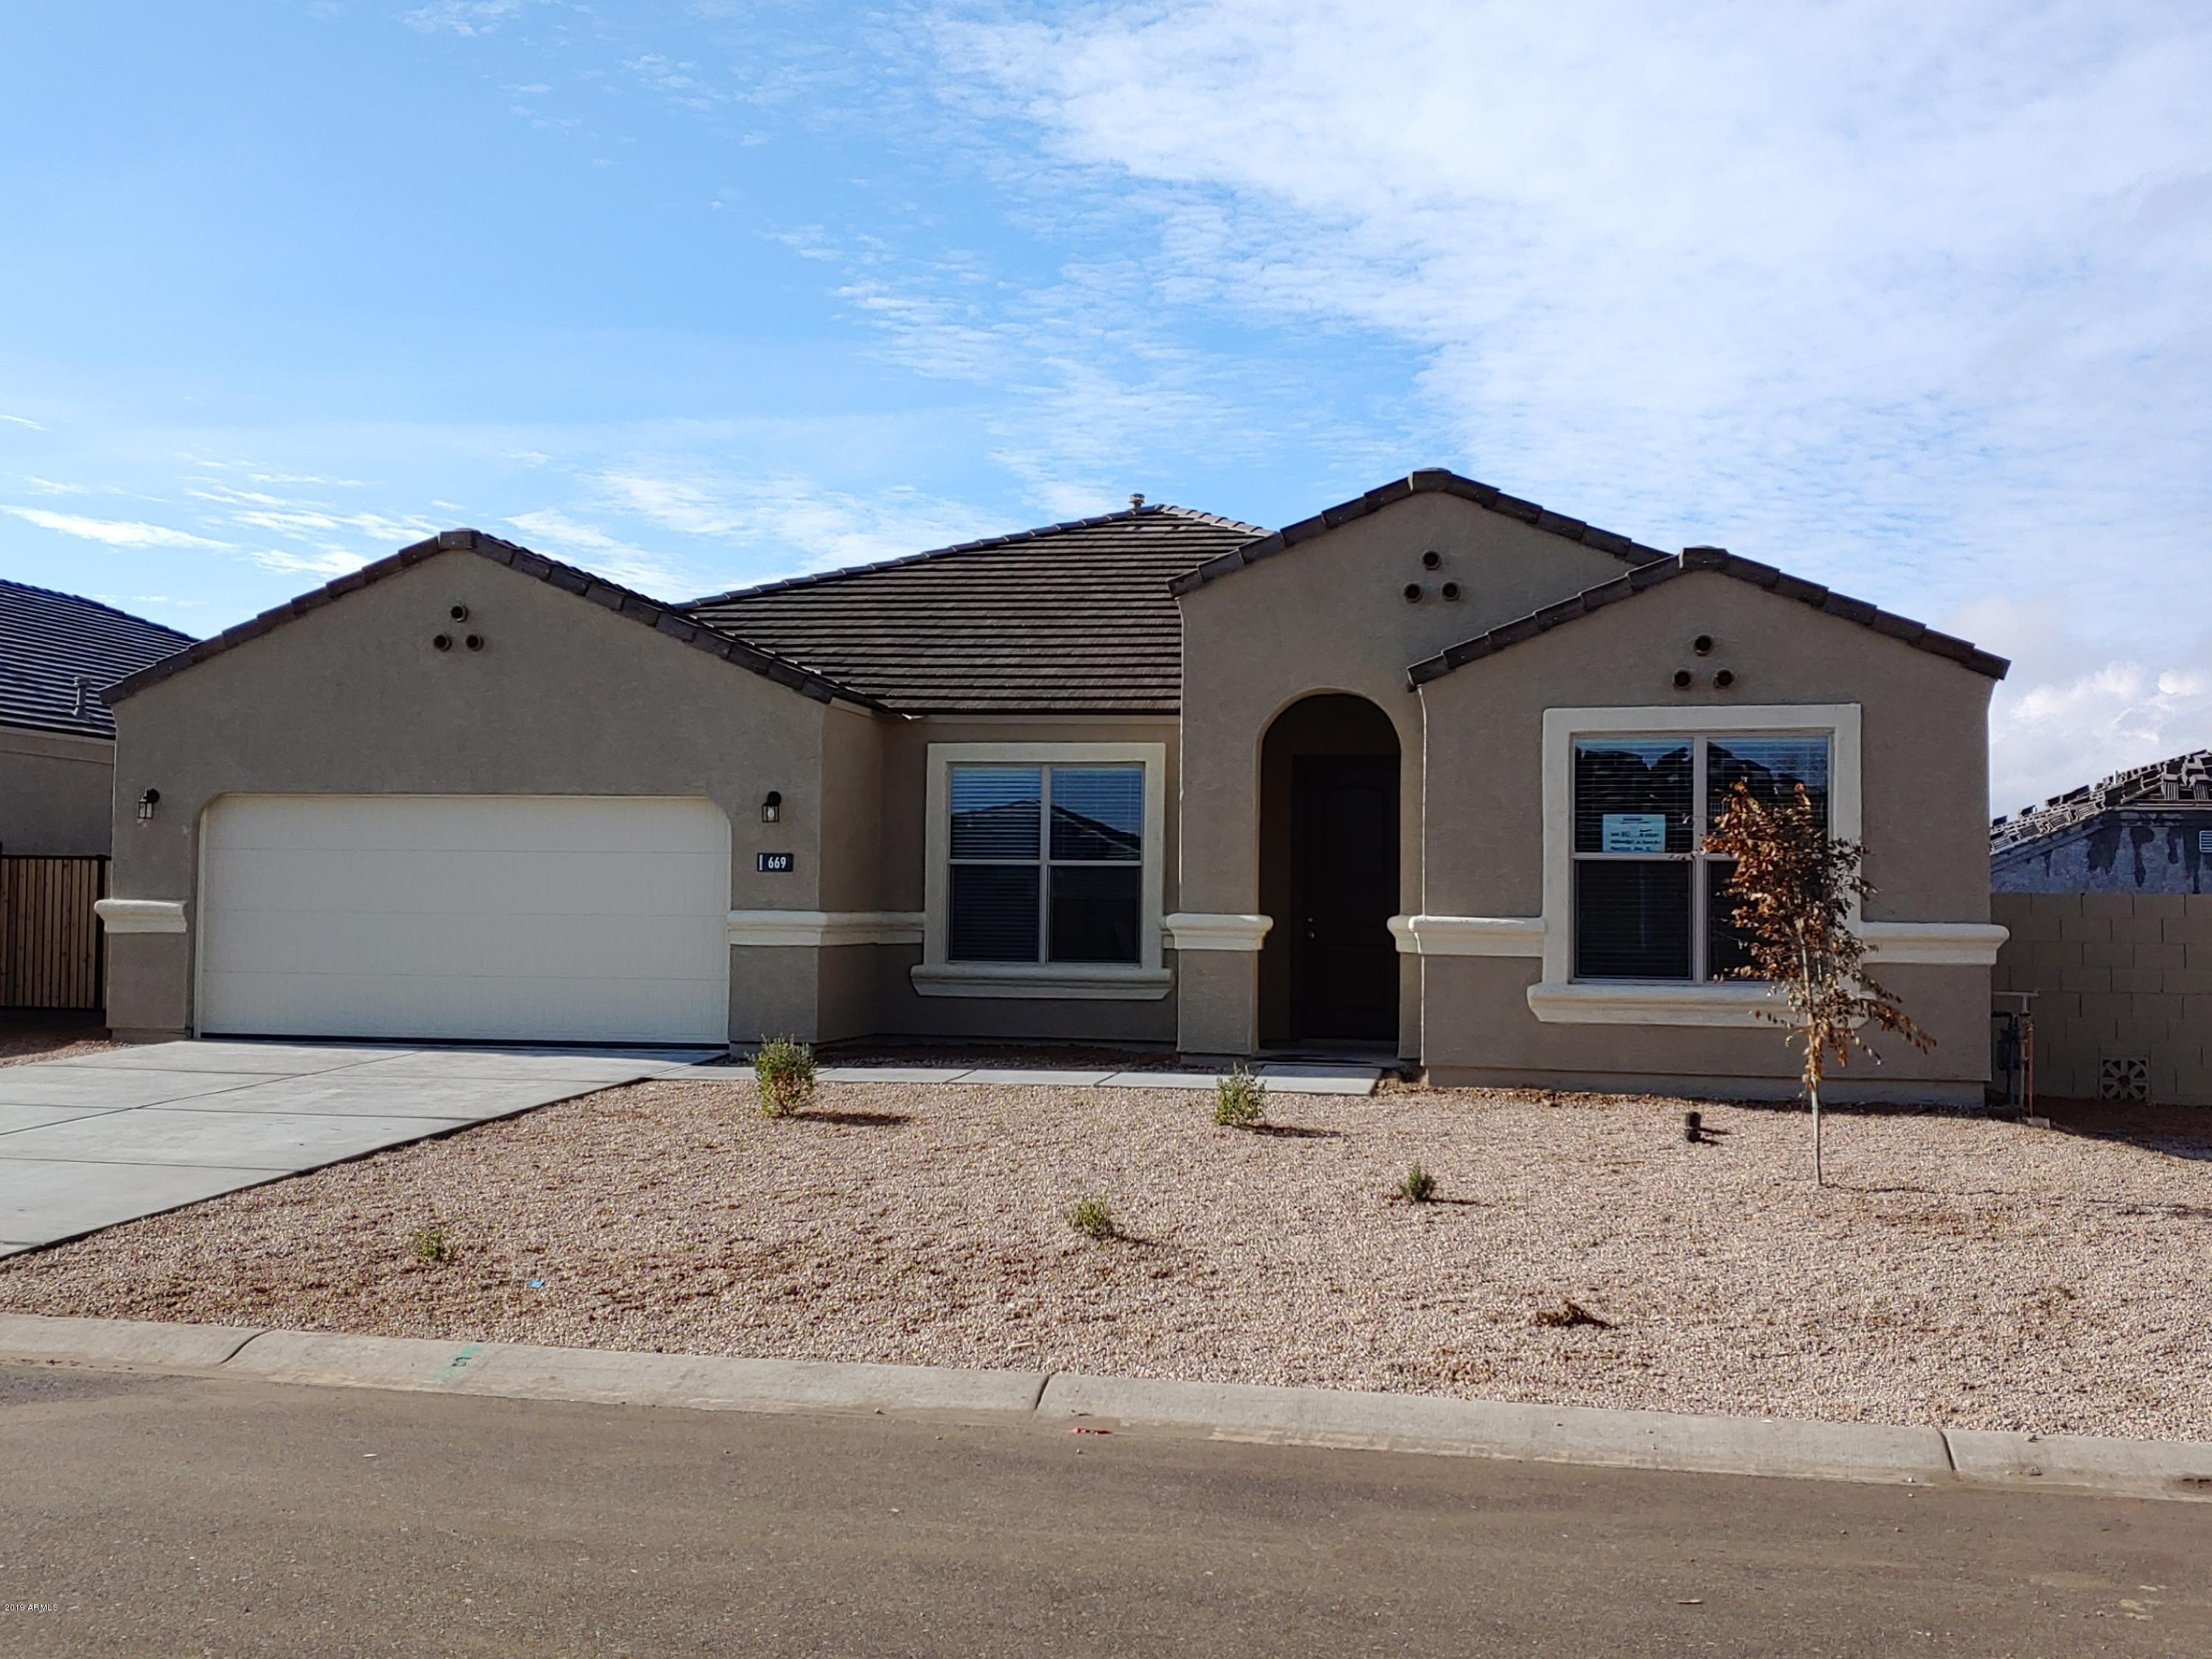 MLS 5869367 669 W BELMONT RED Trail, San Tan Valley, AZ 85143 San Tan Valley AZ Circle Cross Ranch